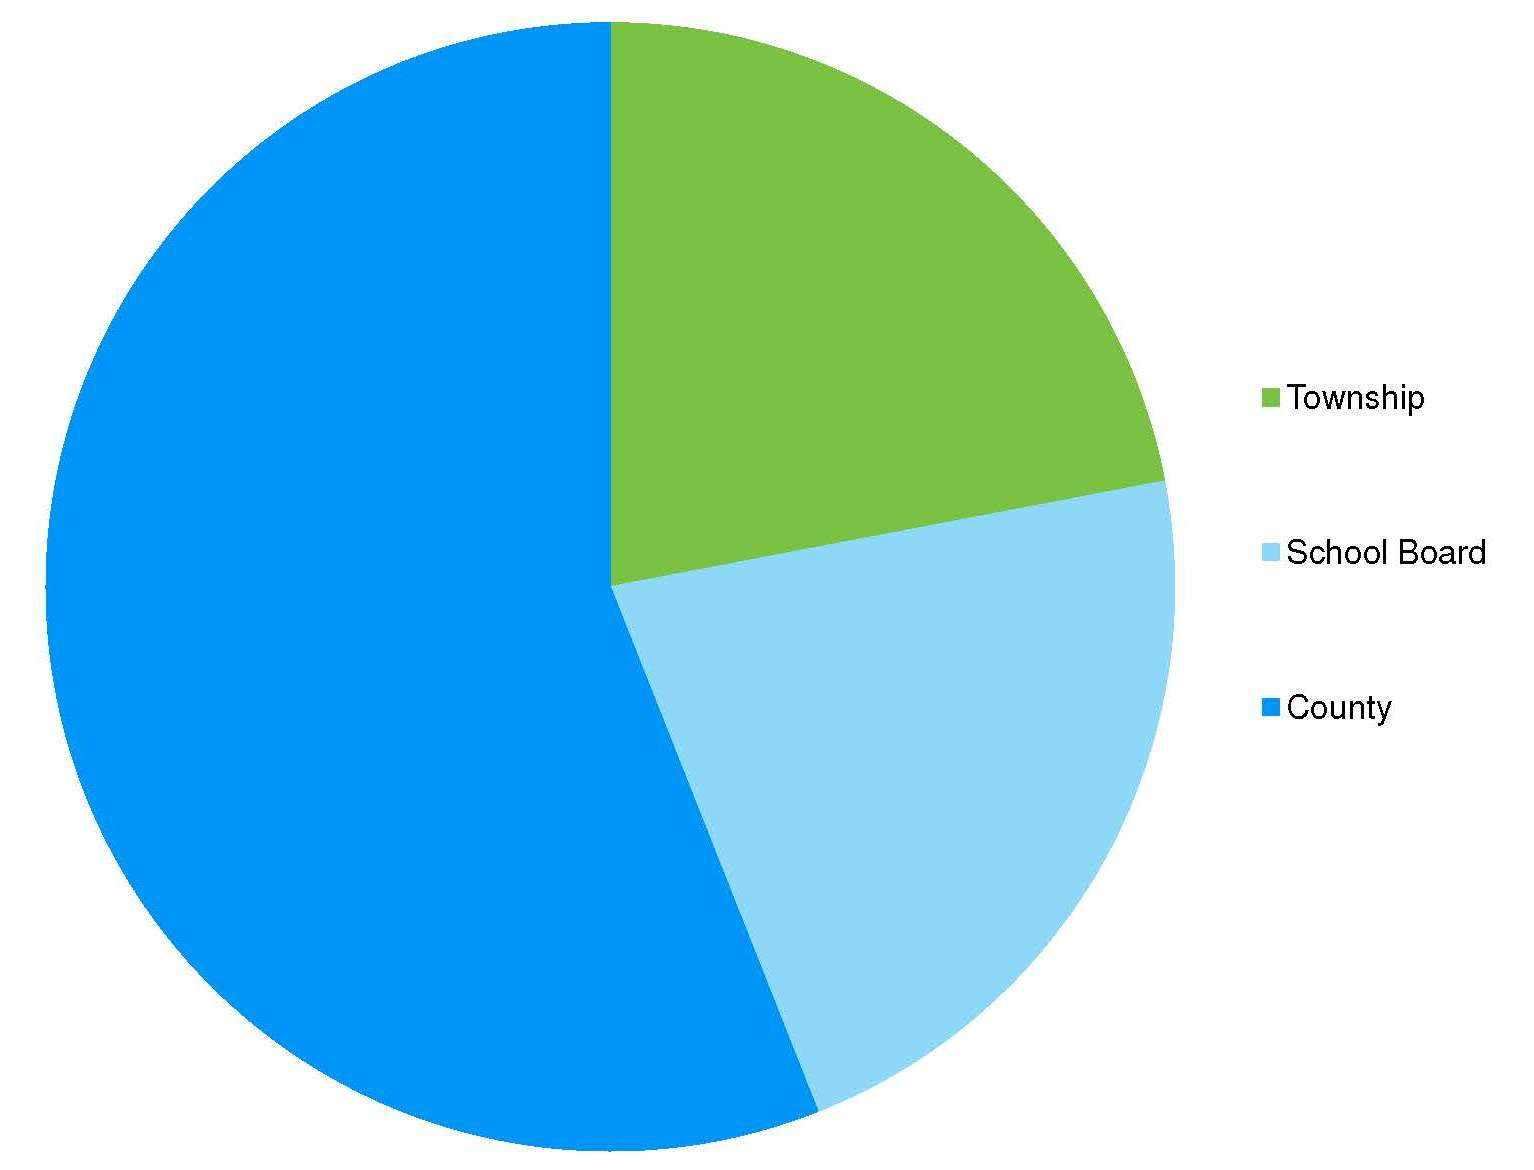 A pie chart showing the amount of taxes paid to the Township, County and School Boards